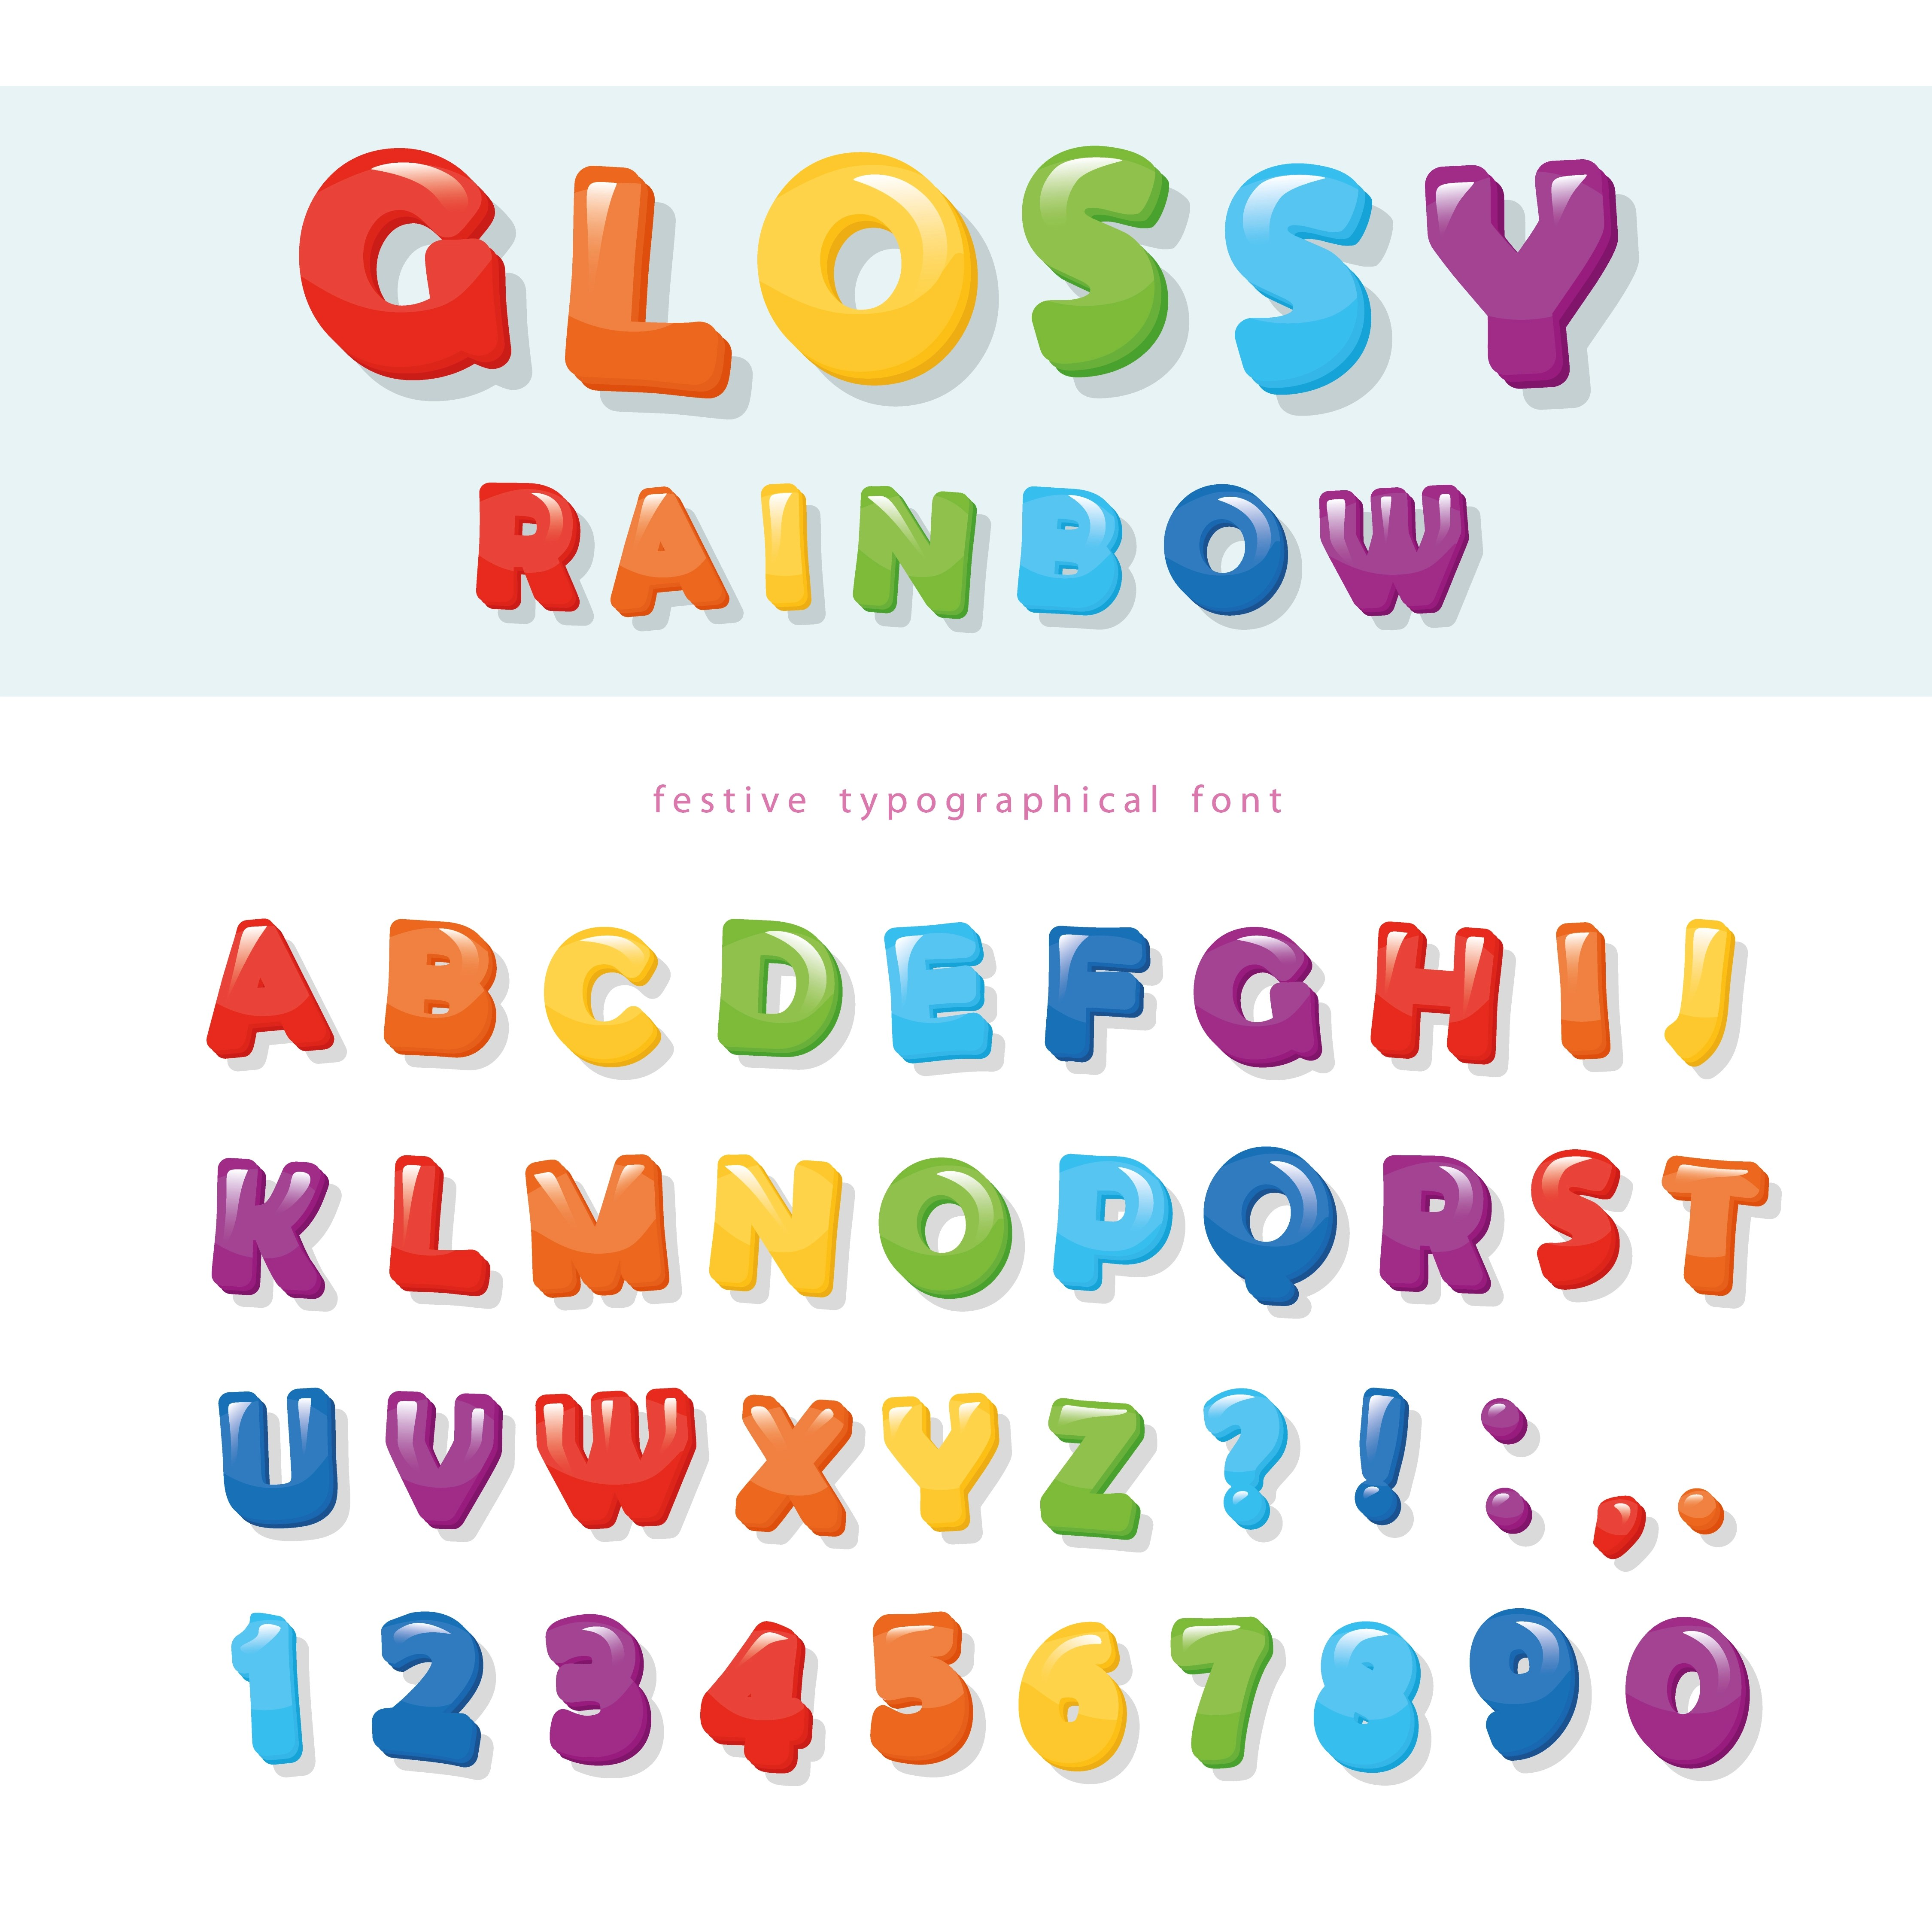 Glossy Rainbow Colored Font Design Festive Abc Letters